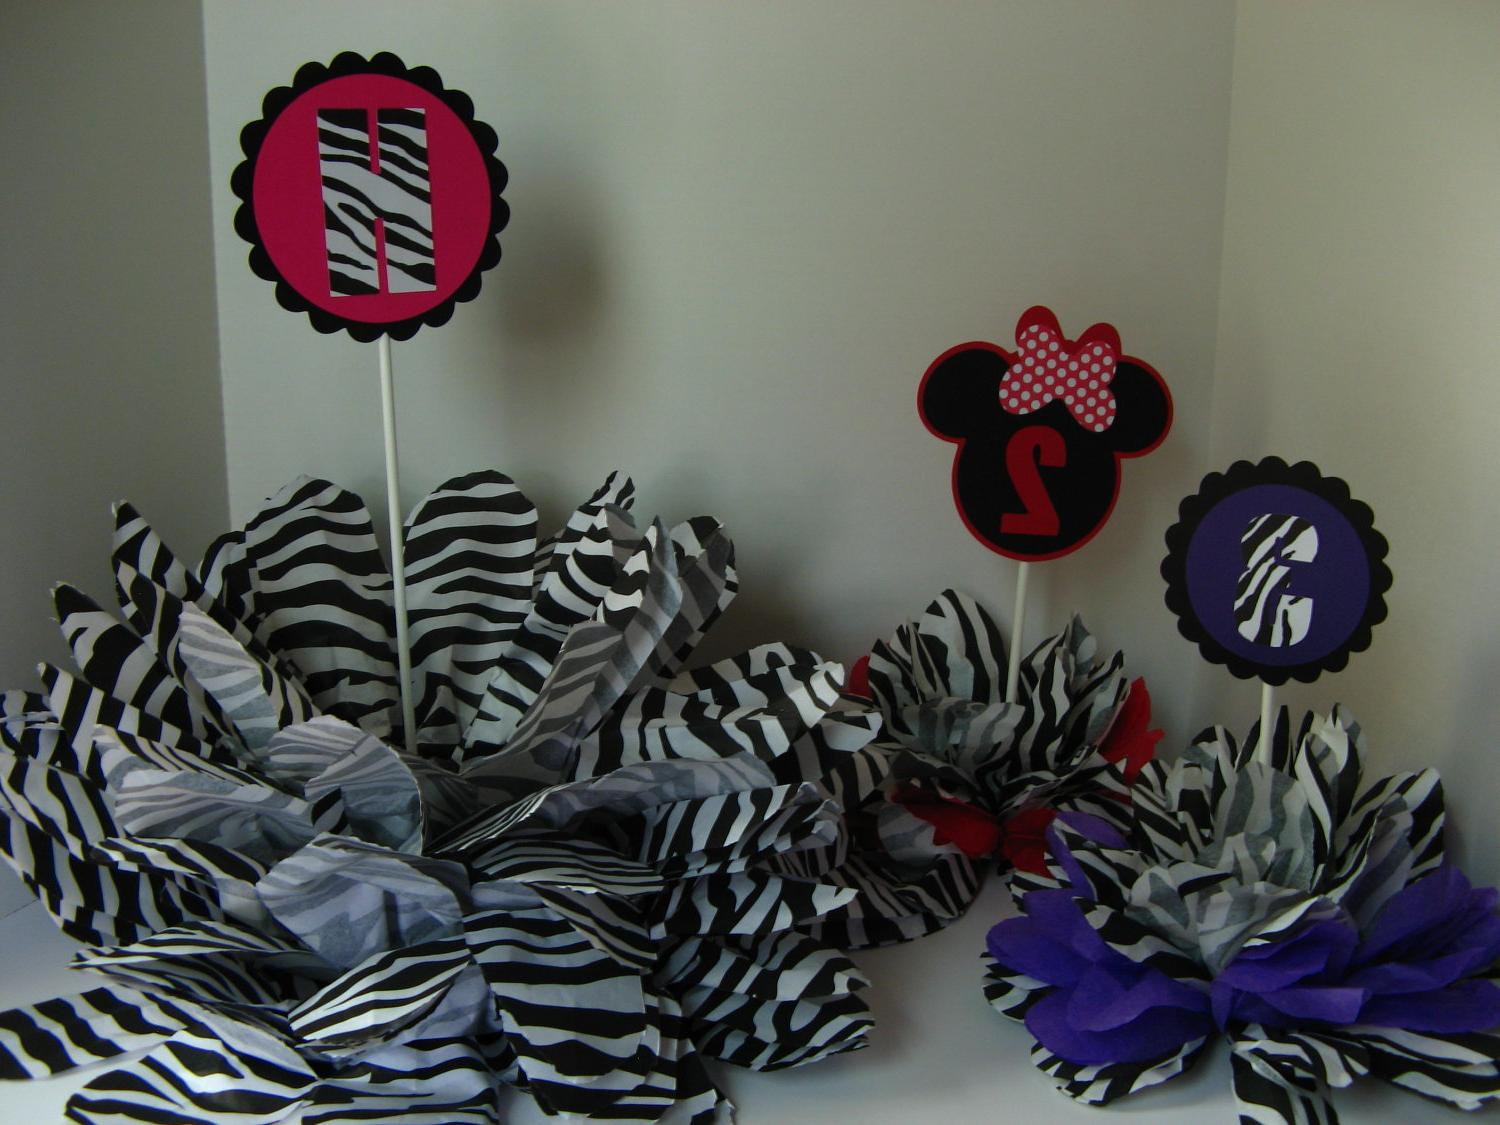 zebra print pomopm decoration LARGE 18 accross 18 tall. From missdaisyw